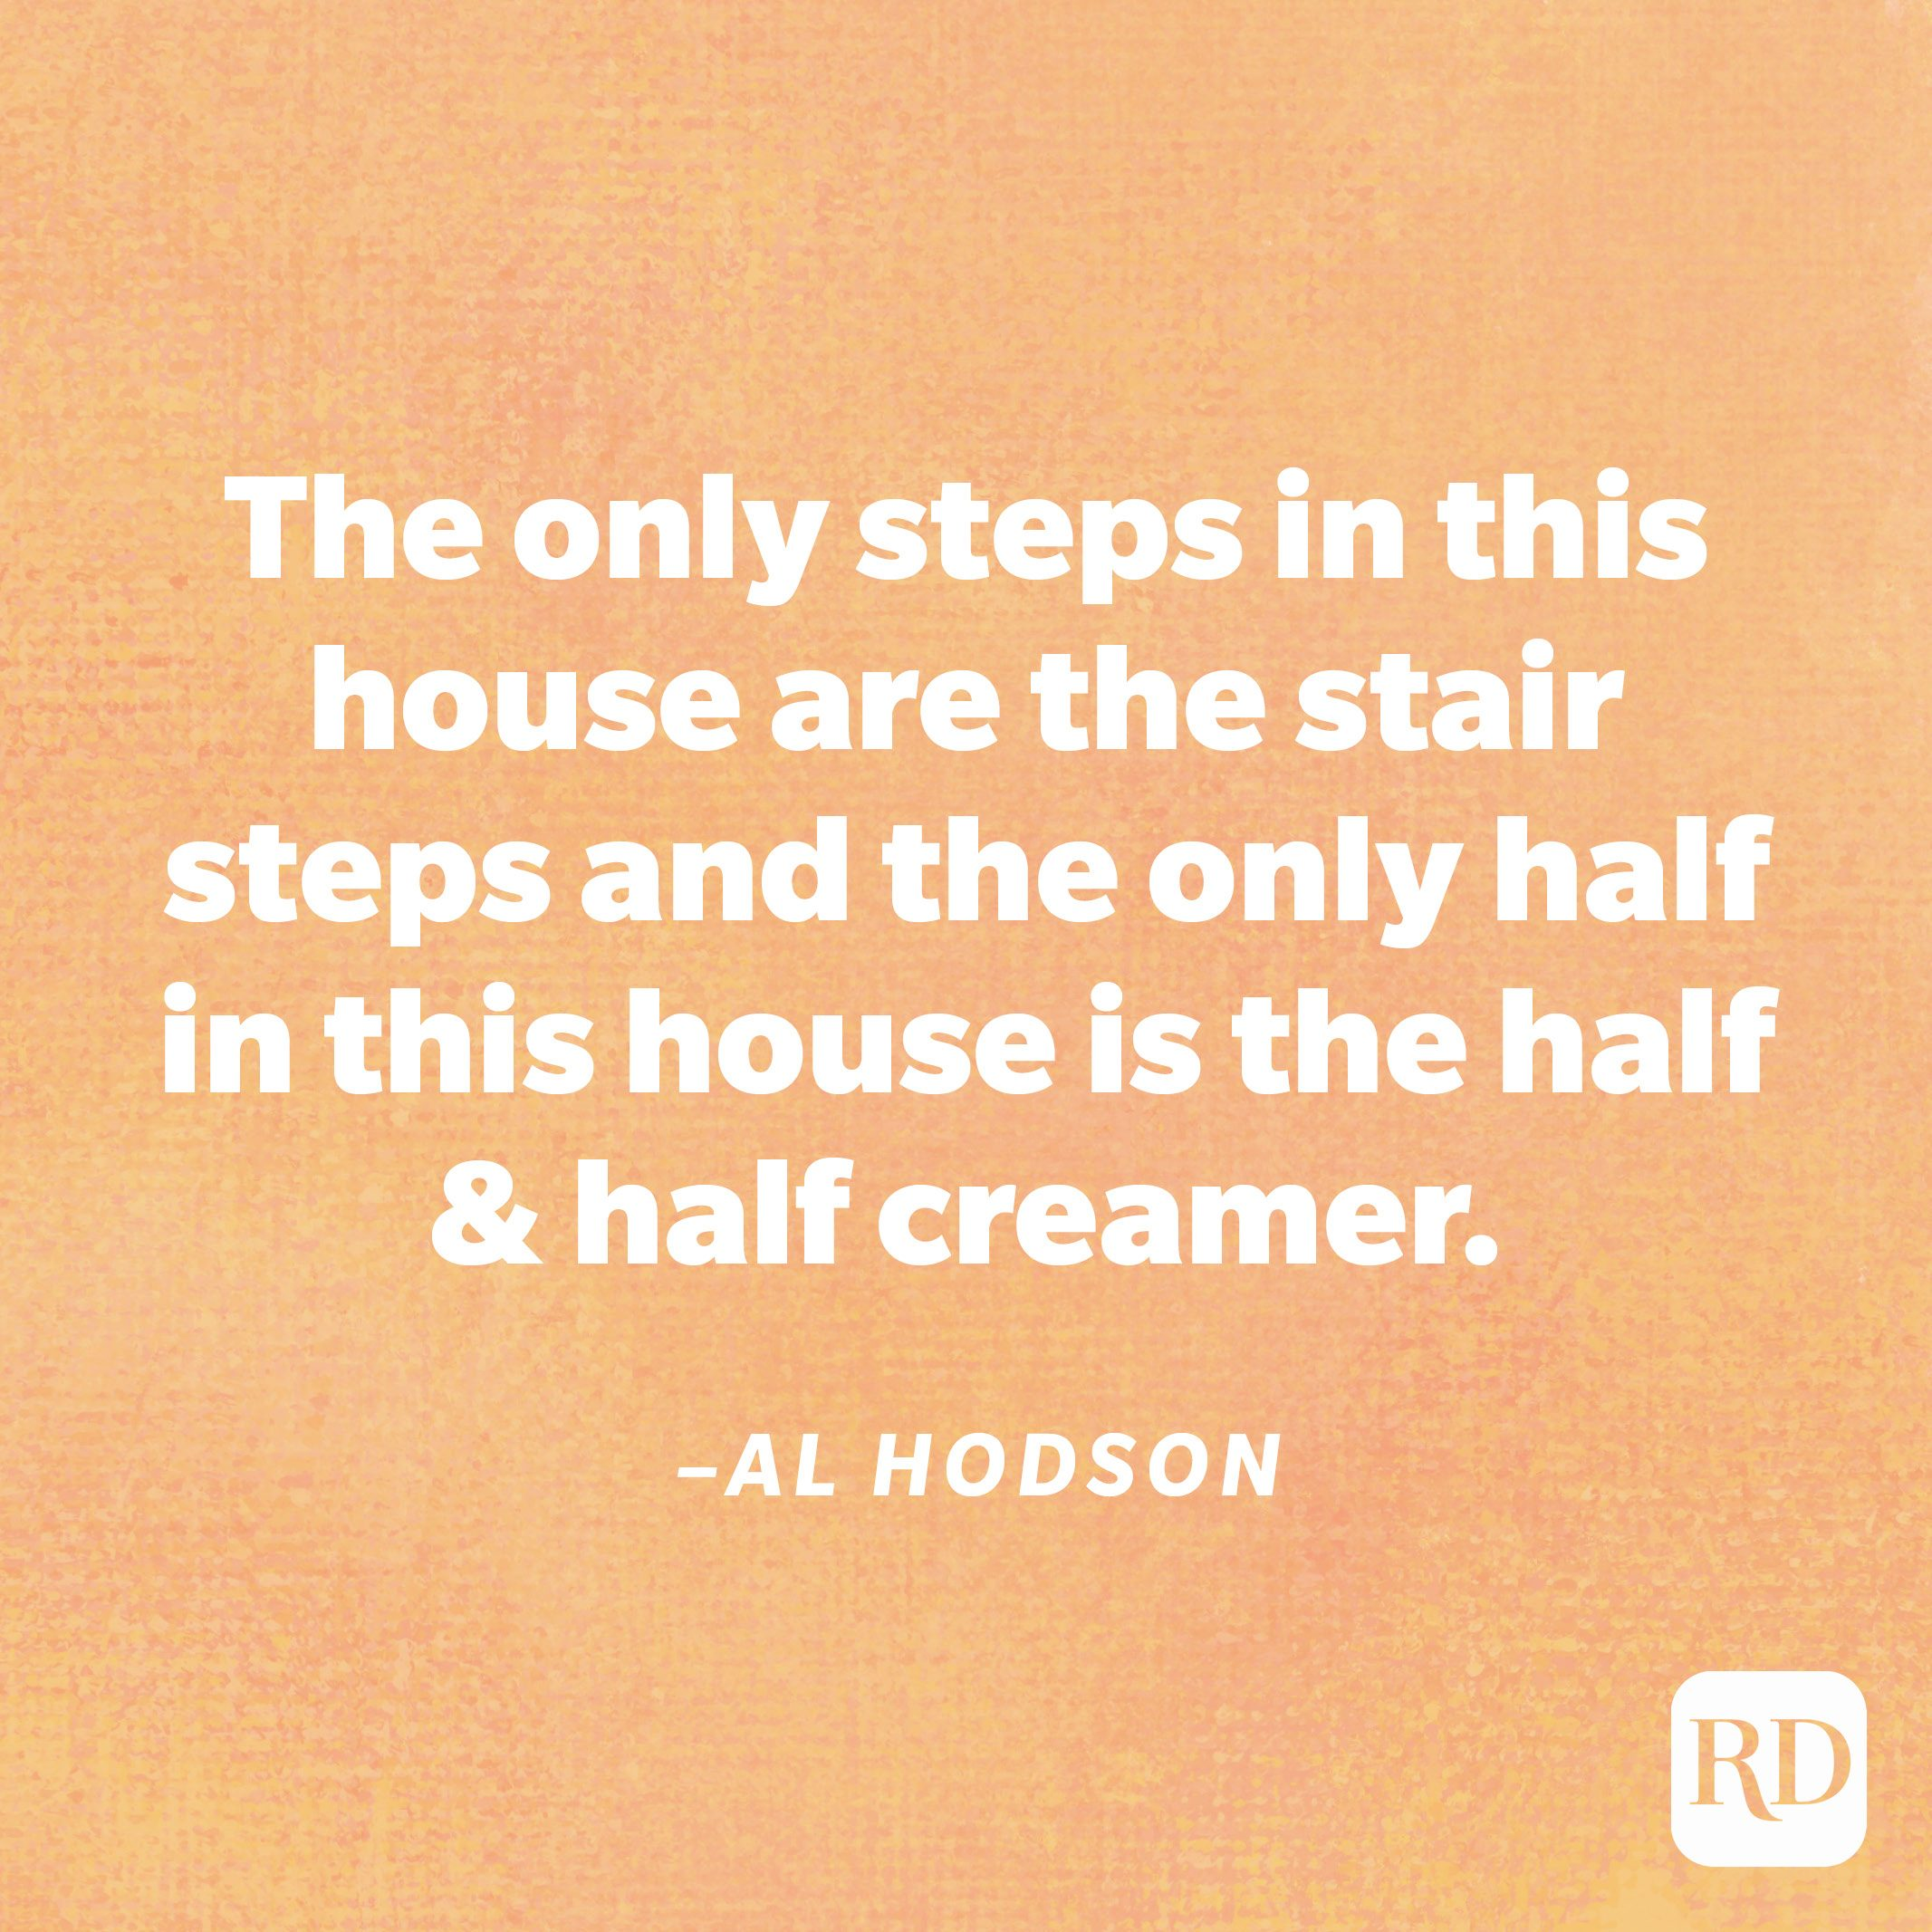 """""""The only steps in this house are the stair steps and the only half in this house is the half & half creamer.""""—Al Hodson"""